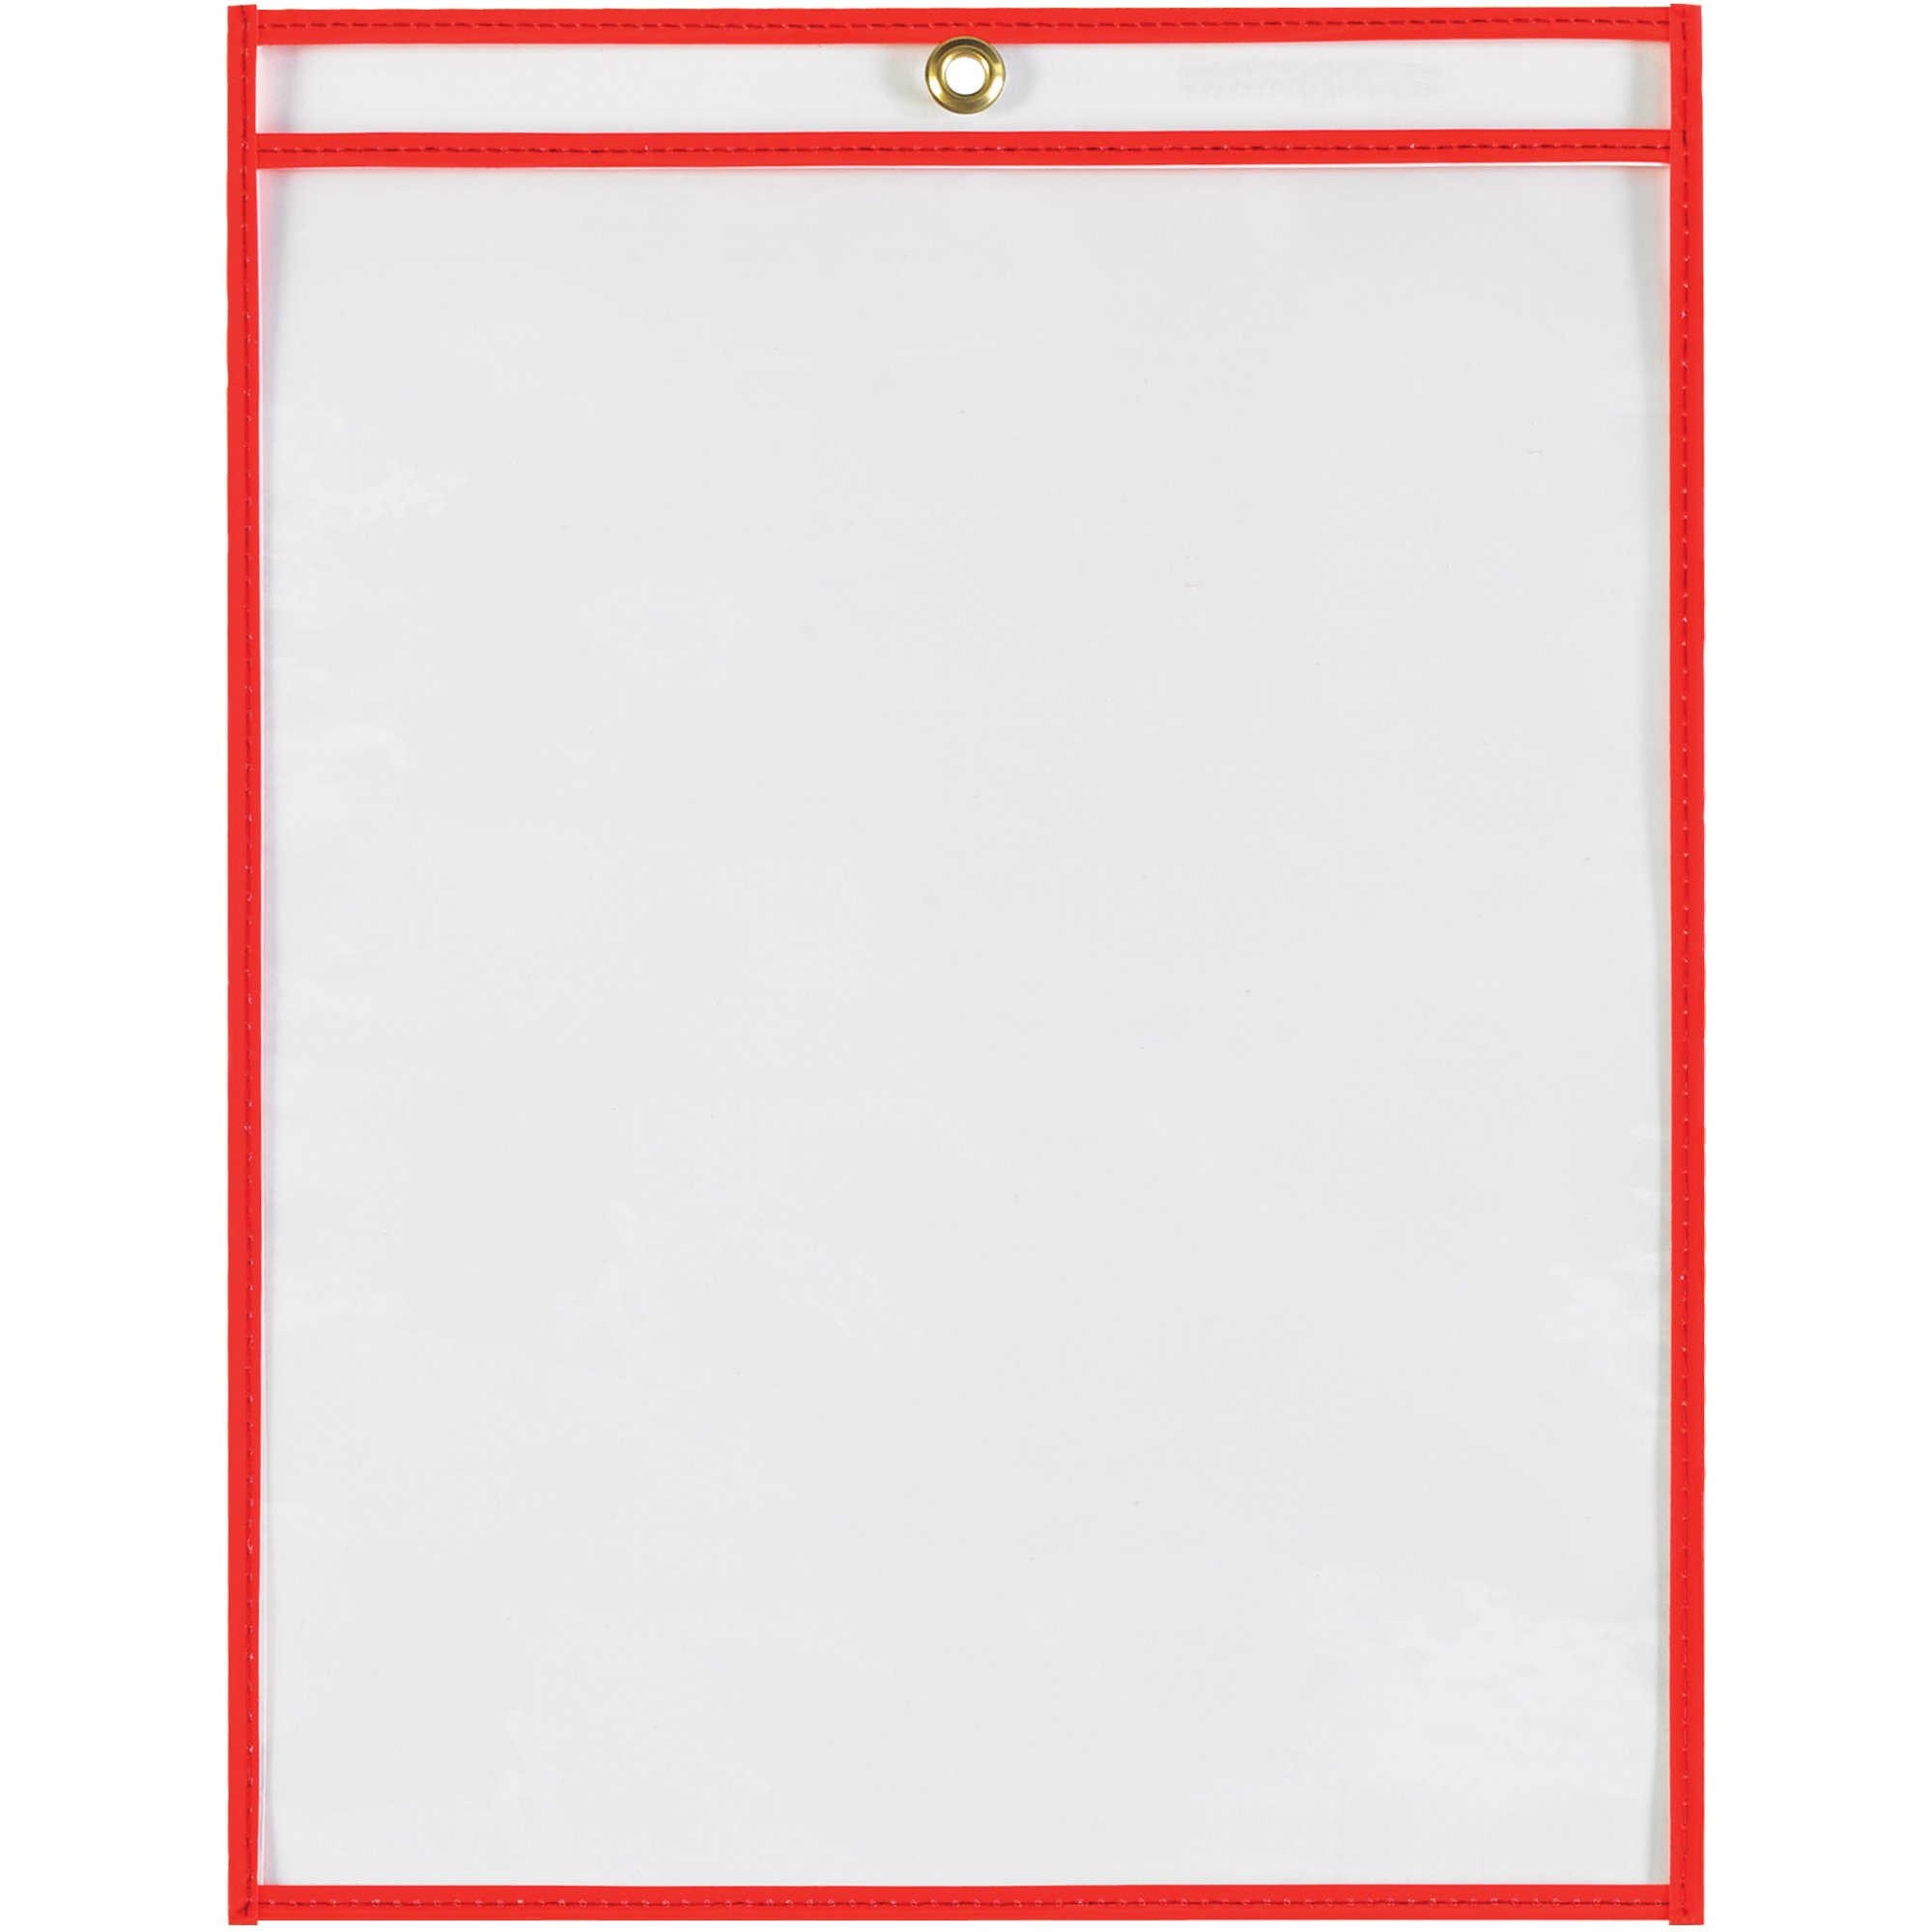 Boxes Fast Stitched Job Ticket Holders, 9'' x 12'', Neon Red, (Pack of 15) by Boxes Fast